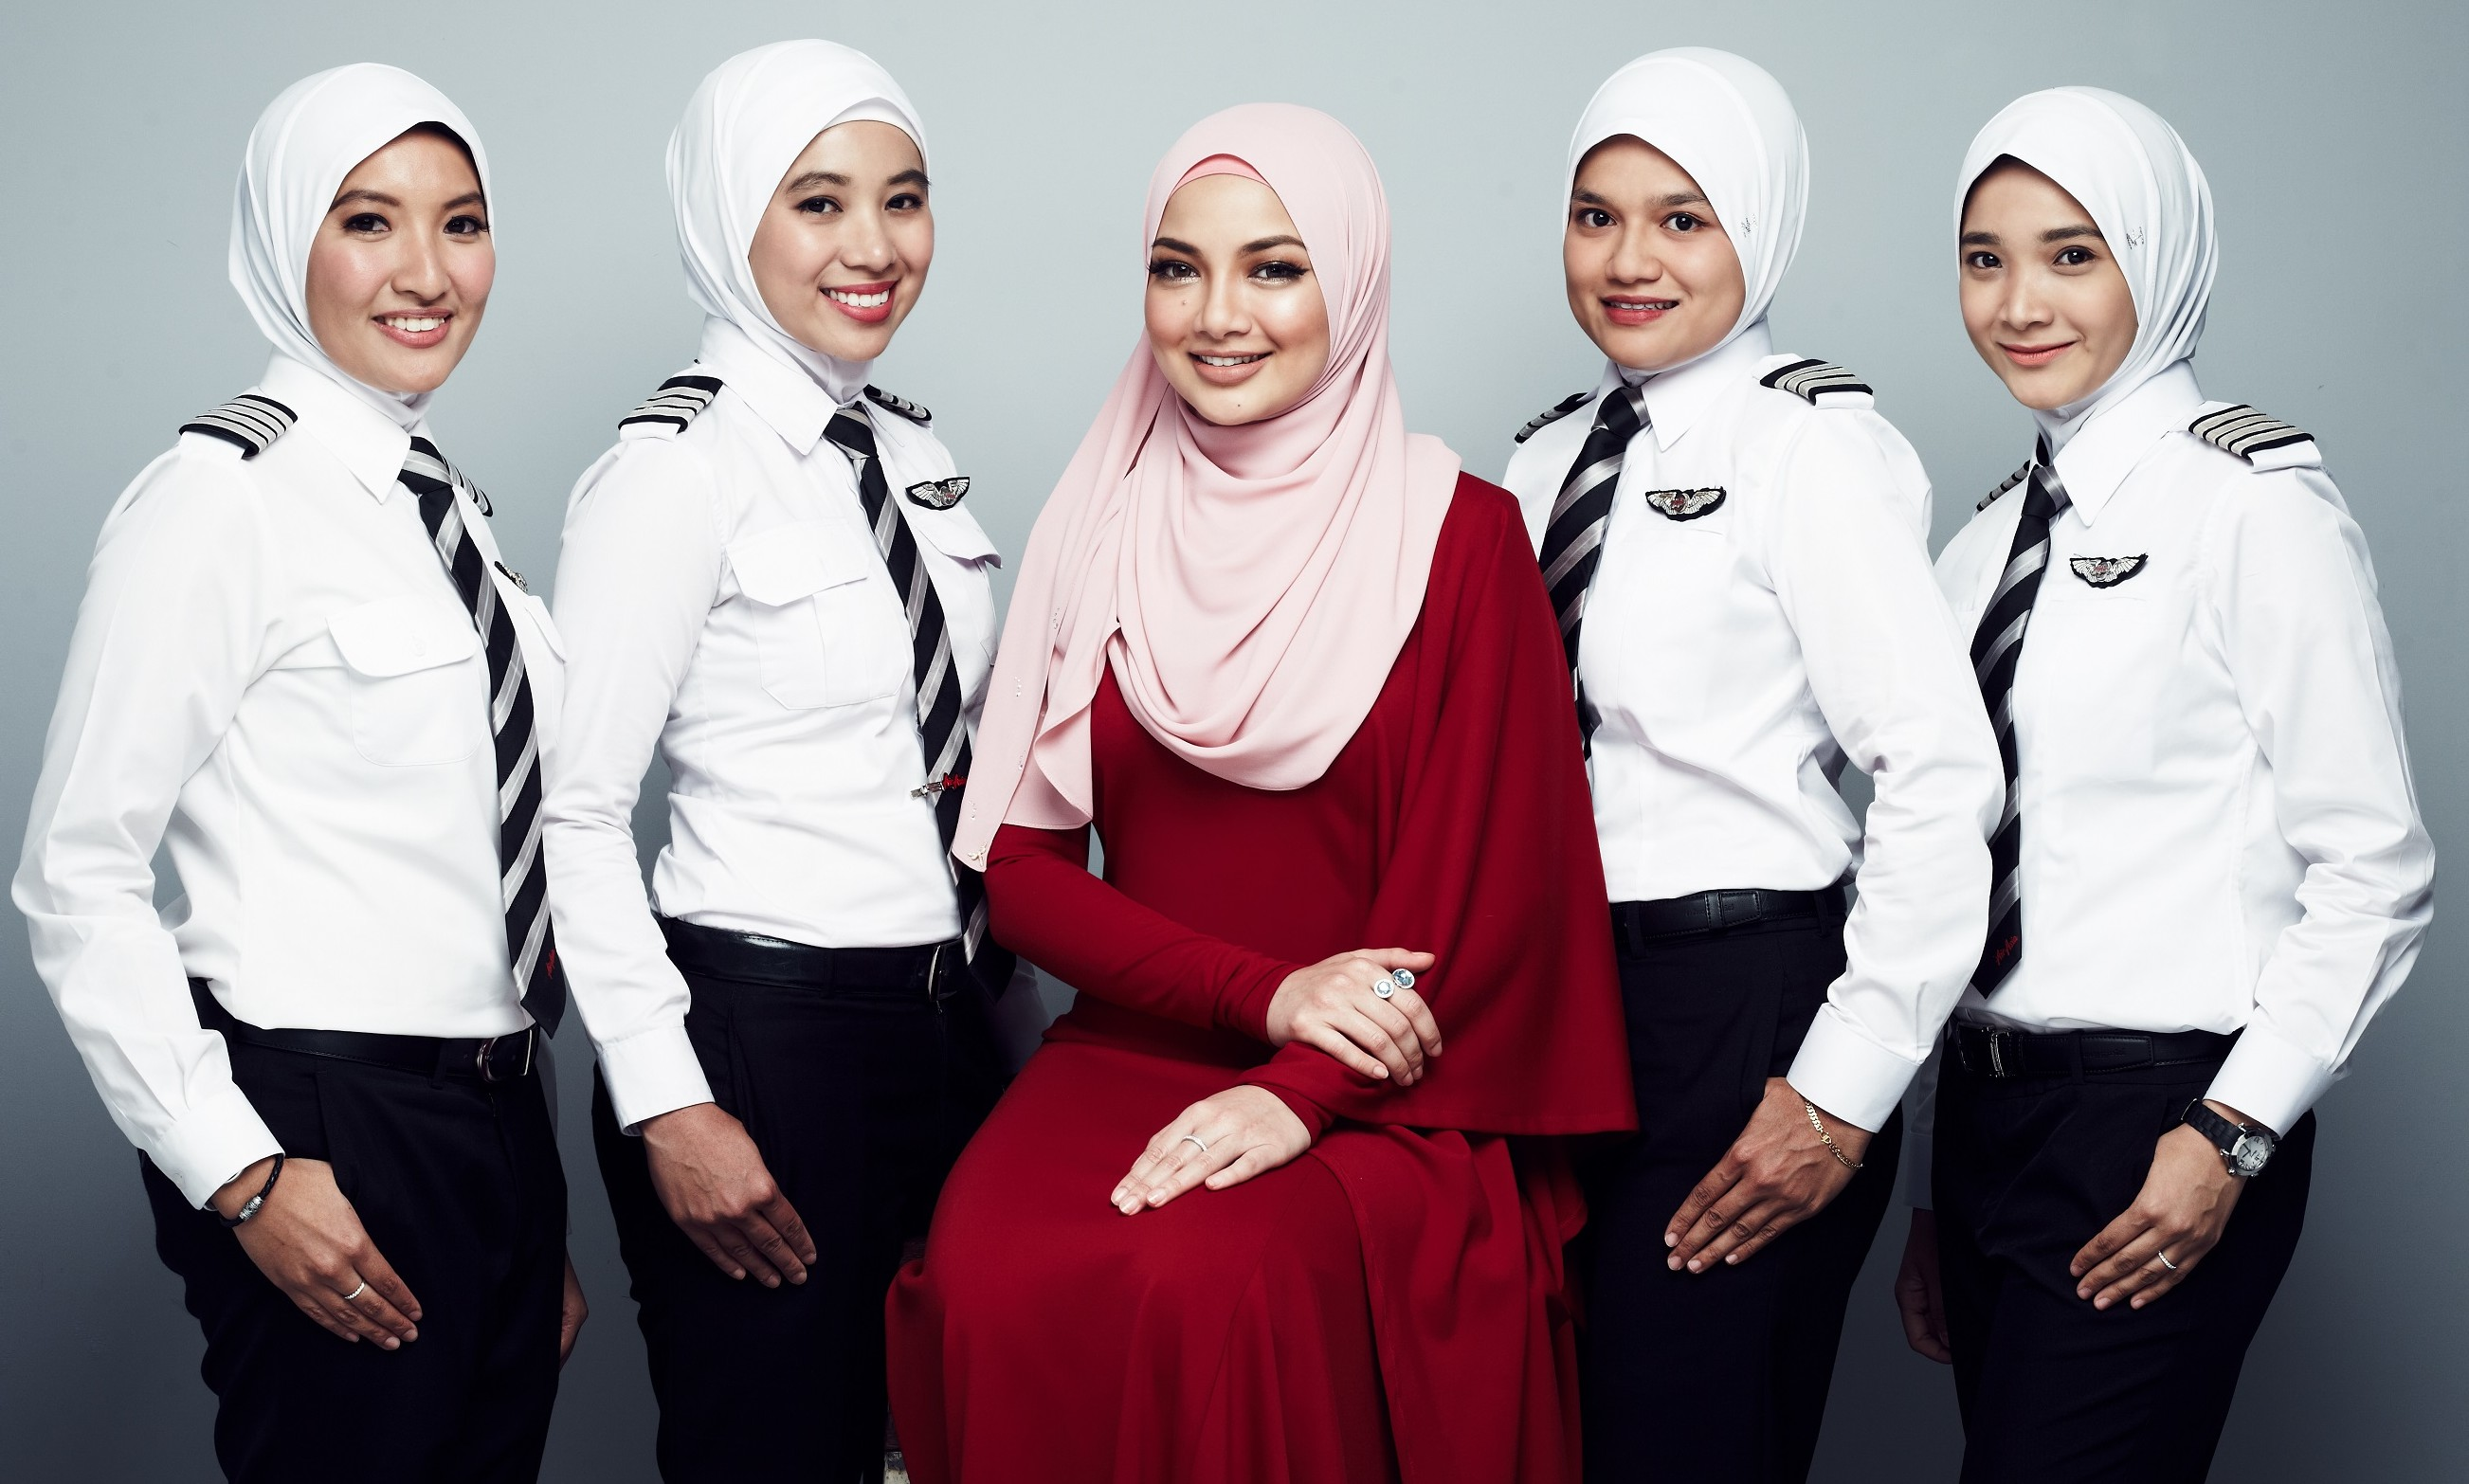 AirAsia partners hijab brand from Malaysian famous hijab icon, Neelofa (in red) to create exclusive headscarf for female pilots | Marketing Interactive